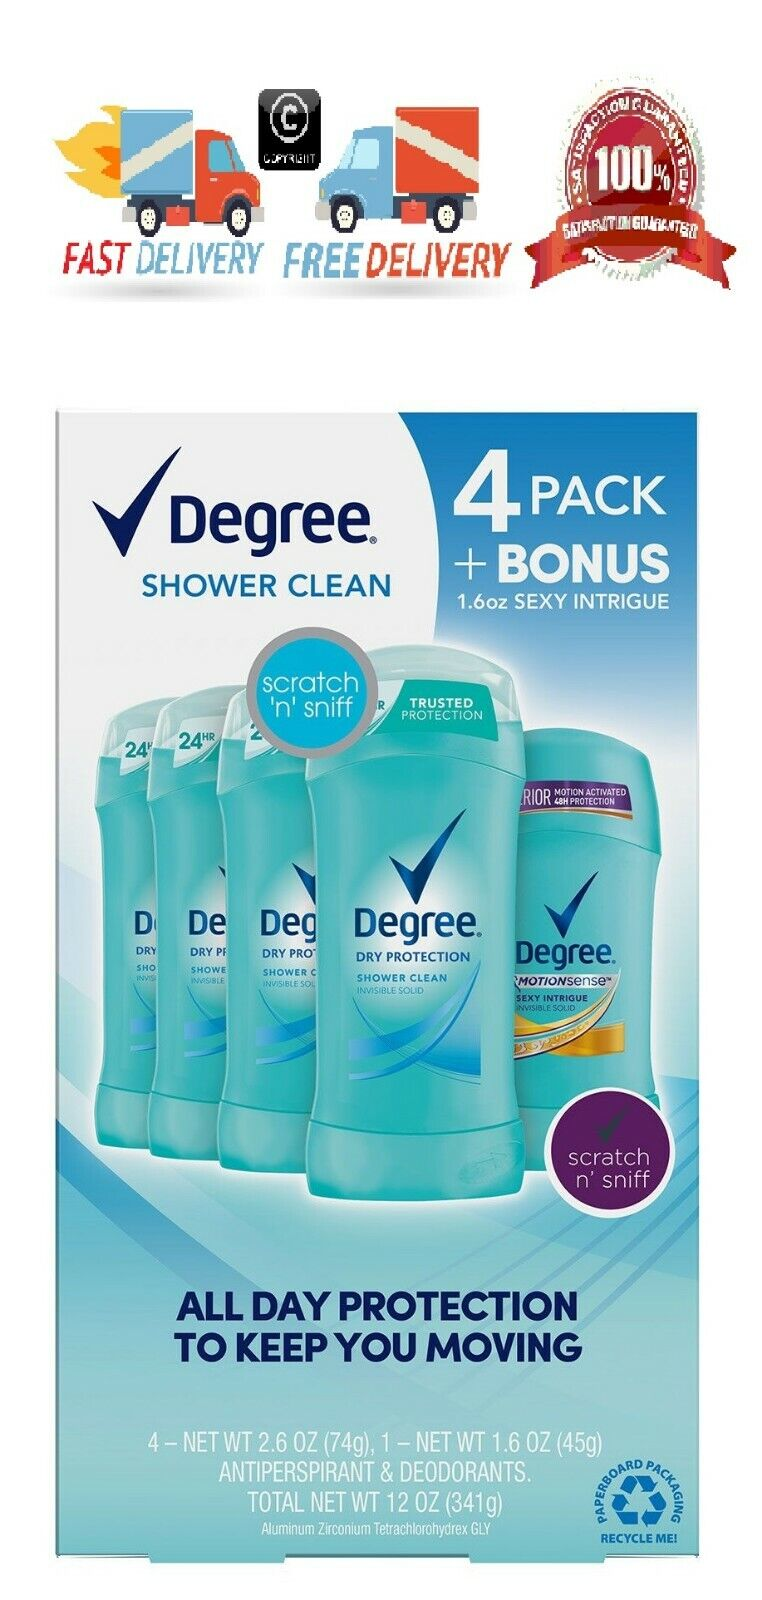 dry protection deodorant shower clean 2 6